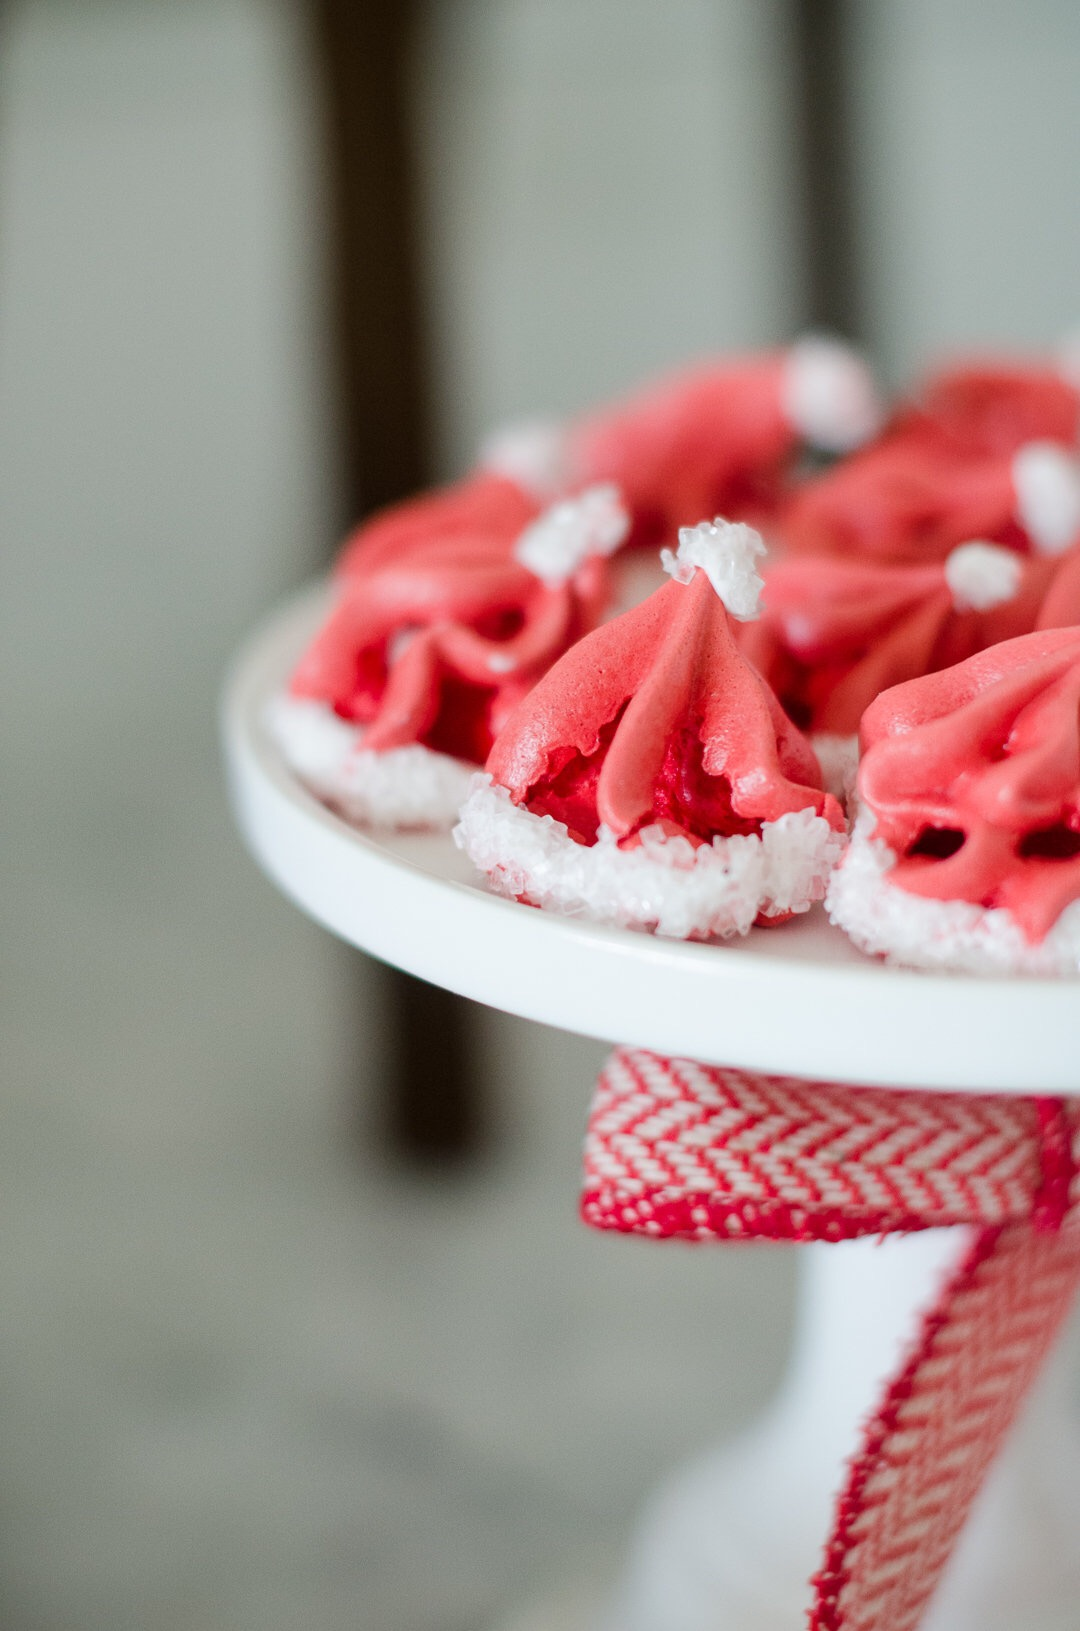 Santa hat petit fours are a perfect addition to your Christmas party. See more holiday party inspiration from Austin based party stylist Mint Event Design at www.minteventdesign.com #desserttable #christmasdesserts #holidayparty #holidays #partyideas #christmasparty #holidaypartyideas #petitfours